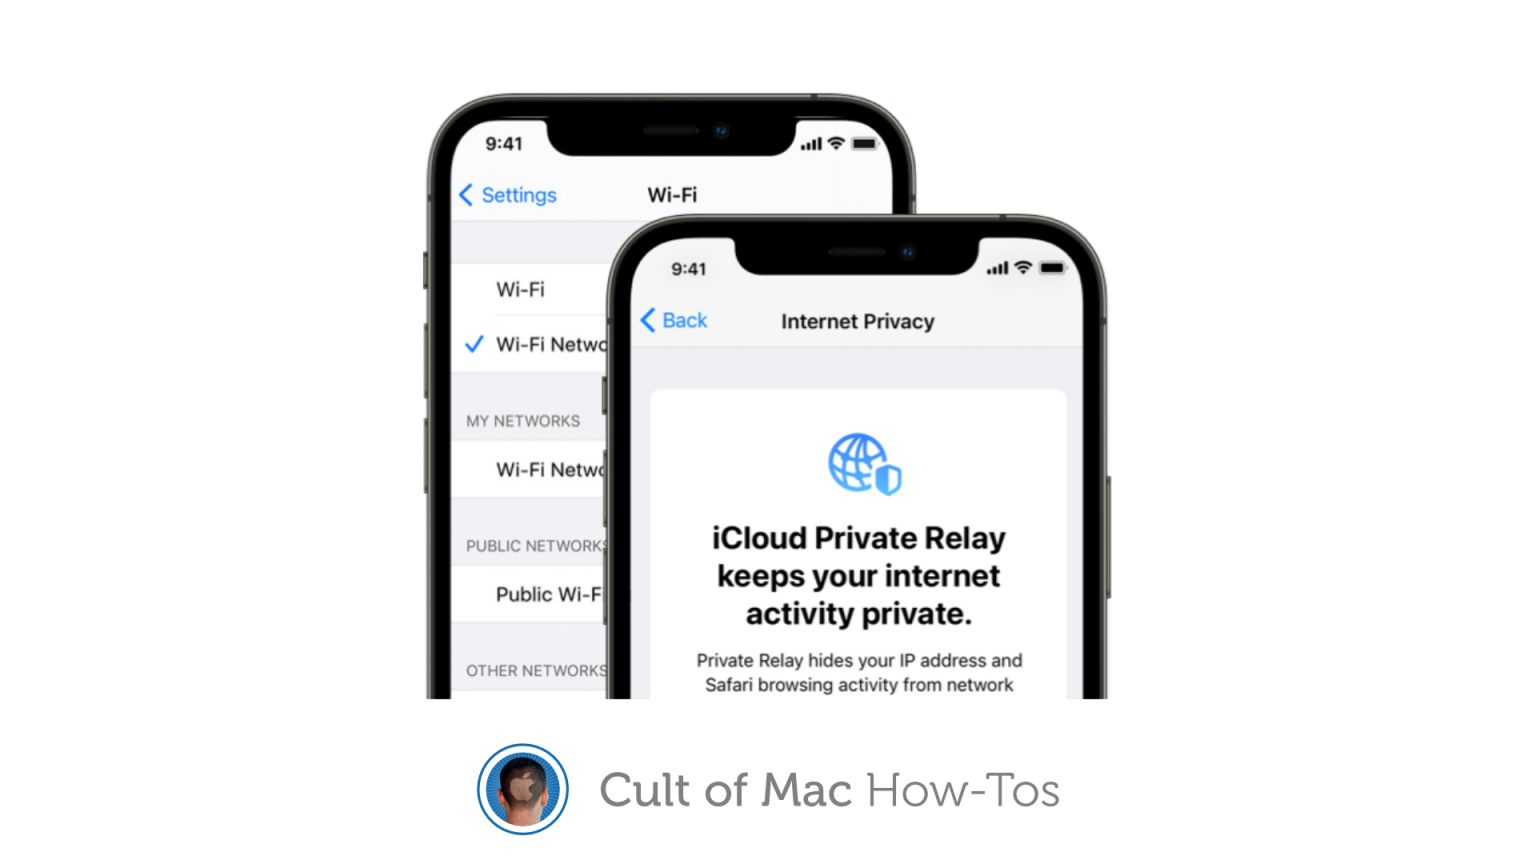 How to enable iCloud Private Relay